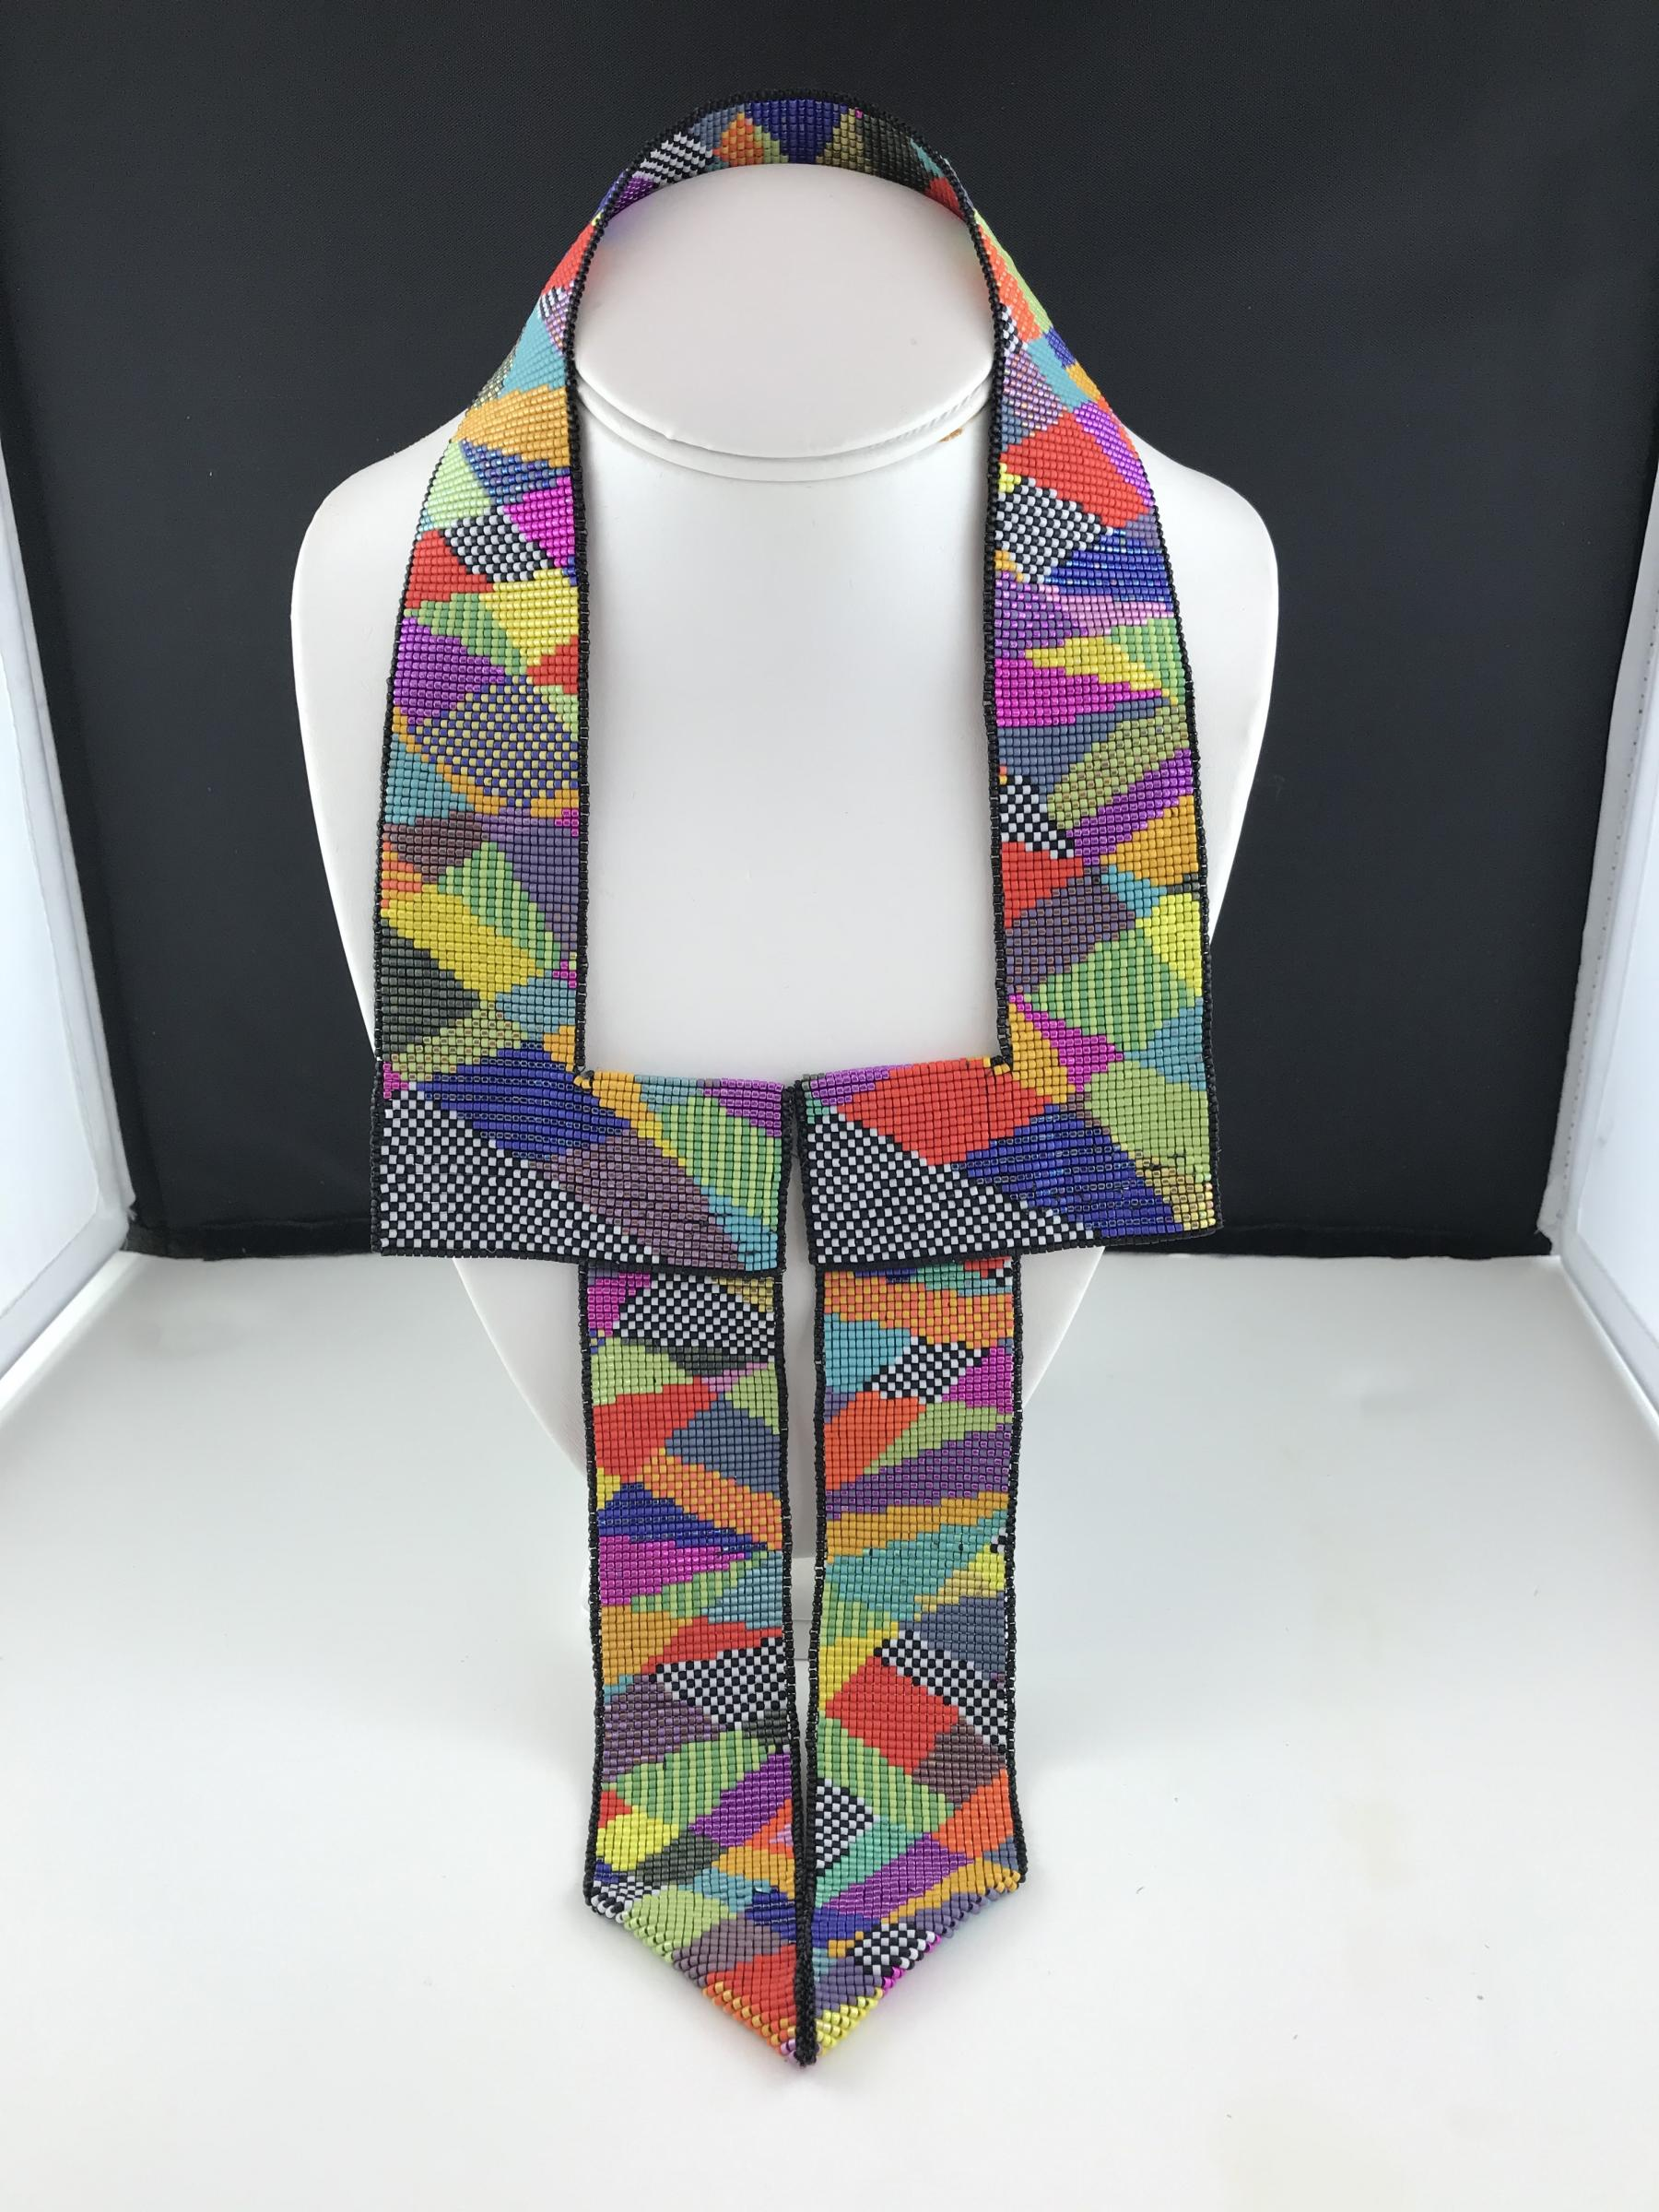 Harlequin Necklace by Beverley Smith